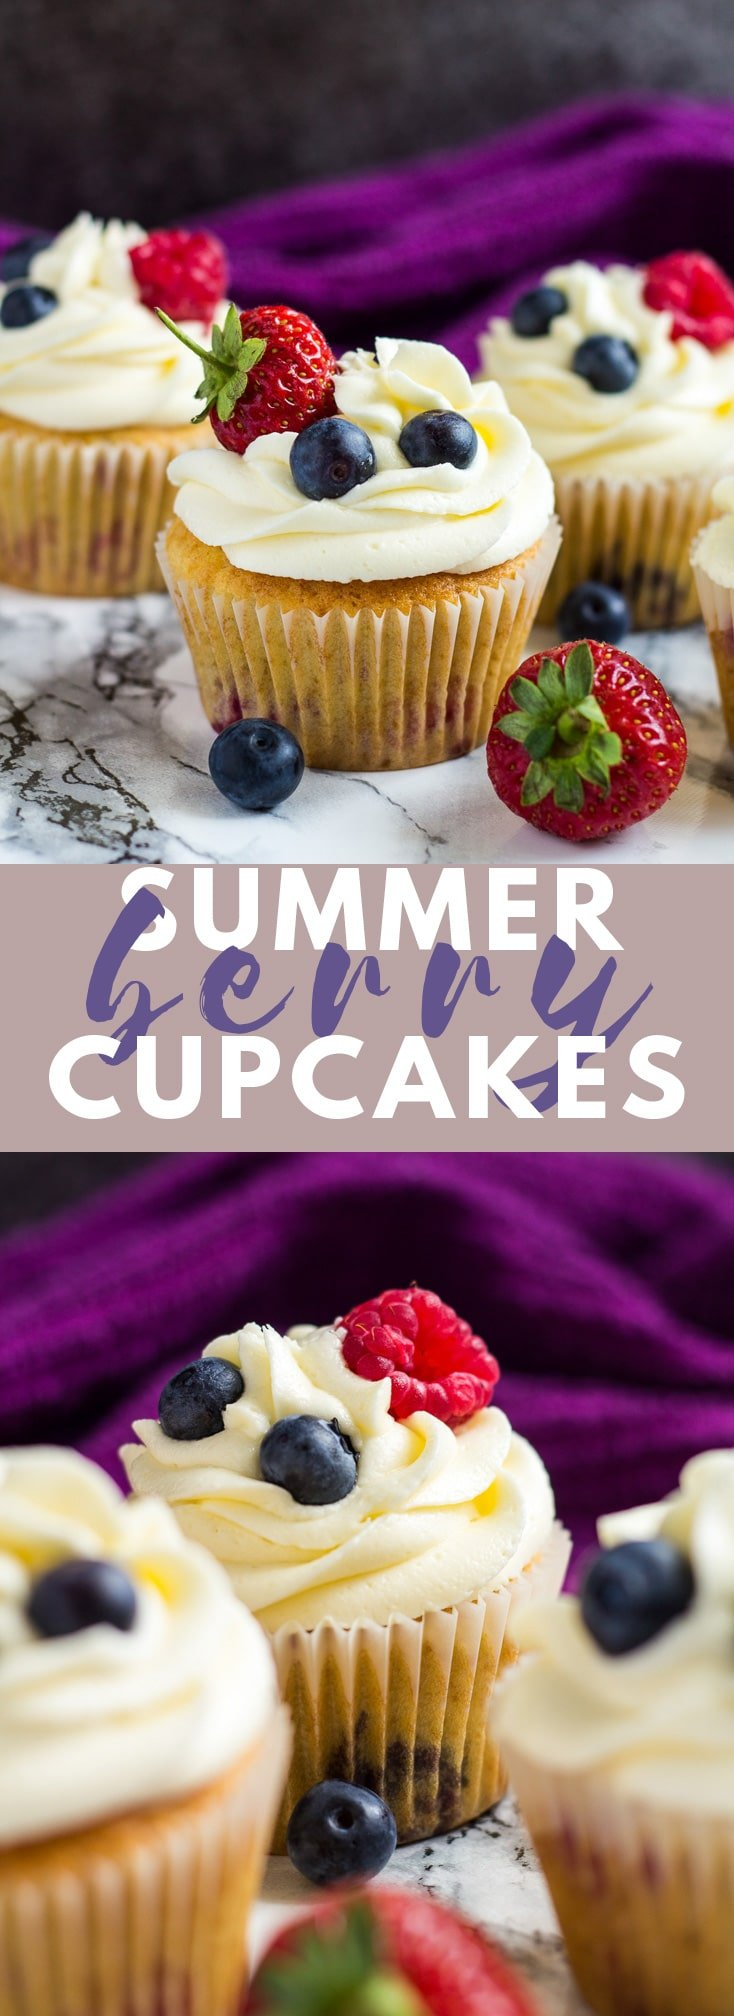 Summer Berry Cupcakes- Deliciously moist and fluffy vanilla cupcakes stuffed with summer berries, and topped with a sweet buttercream frosting! #cupcakes #cupcakerecipes #summerrecipes